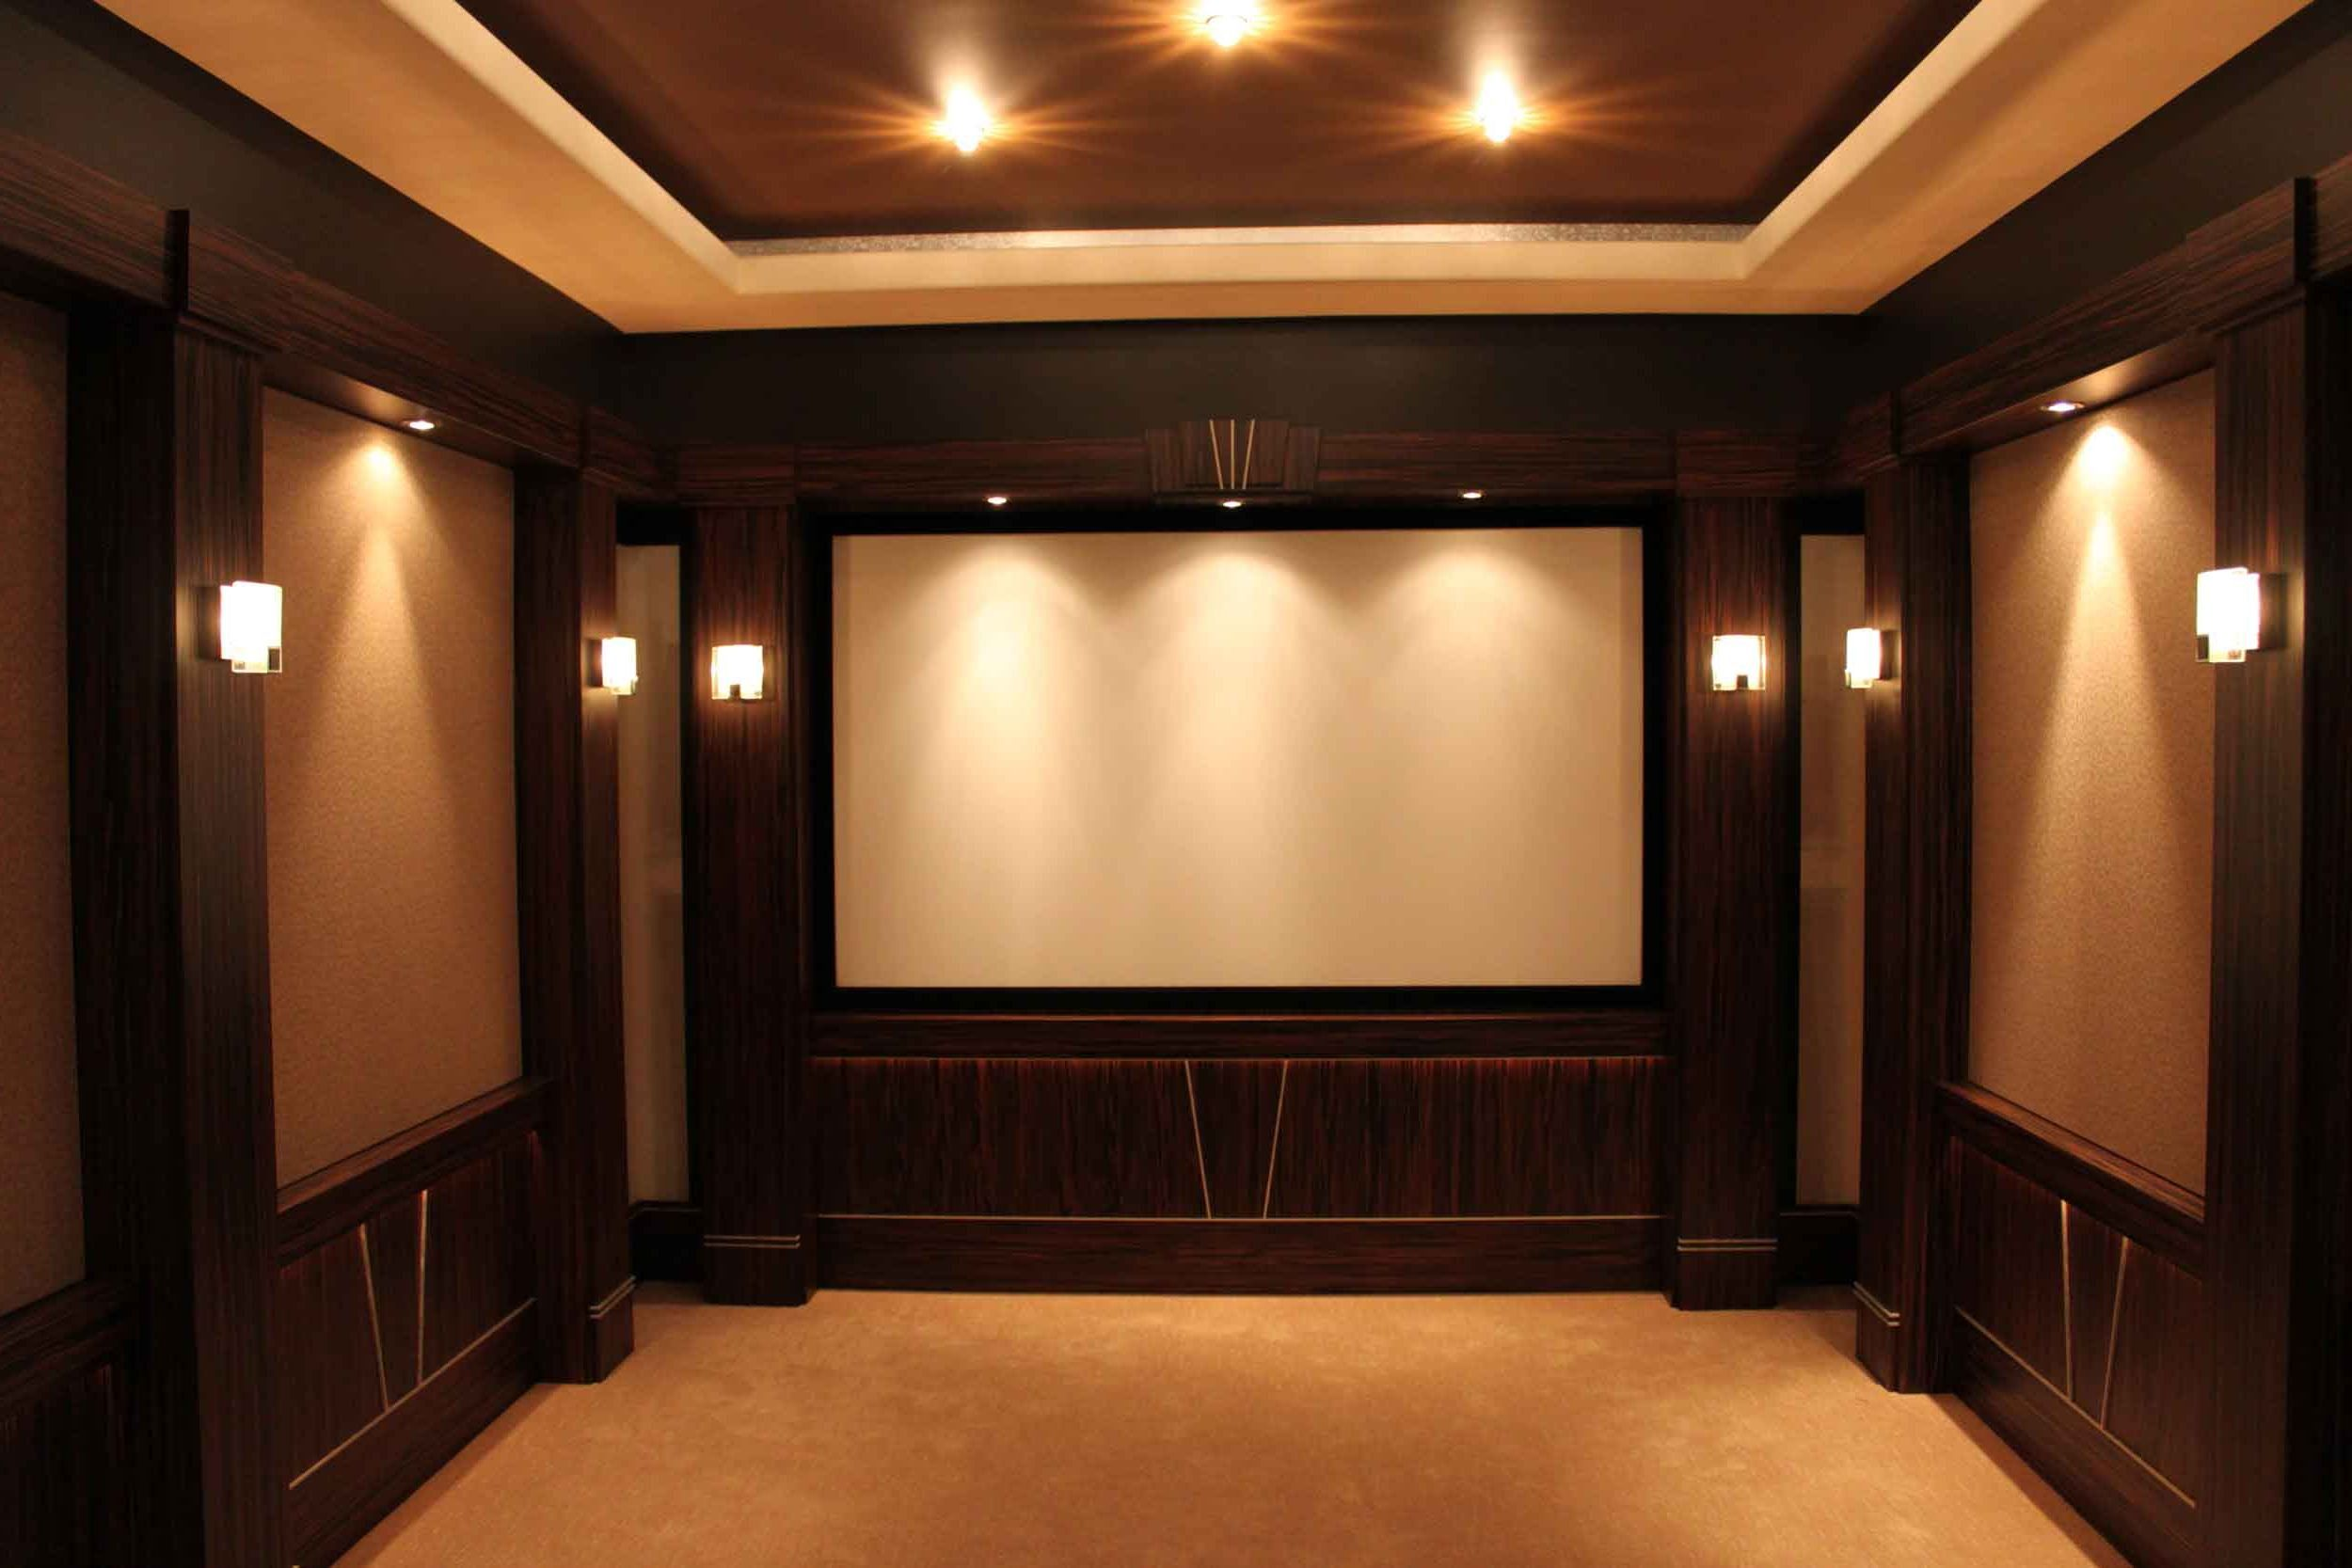 Interior Small Home Theater Room Ideas Big Screen On The Beige Wall Long Table Bar Movie Small Home Theater Room Design Theater Room Design Small Home Theaters